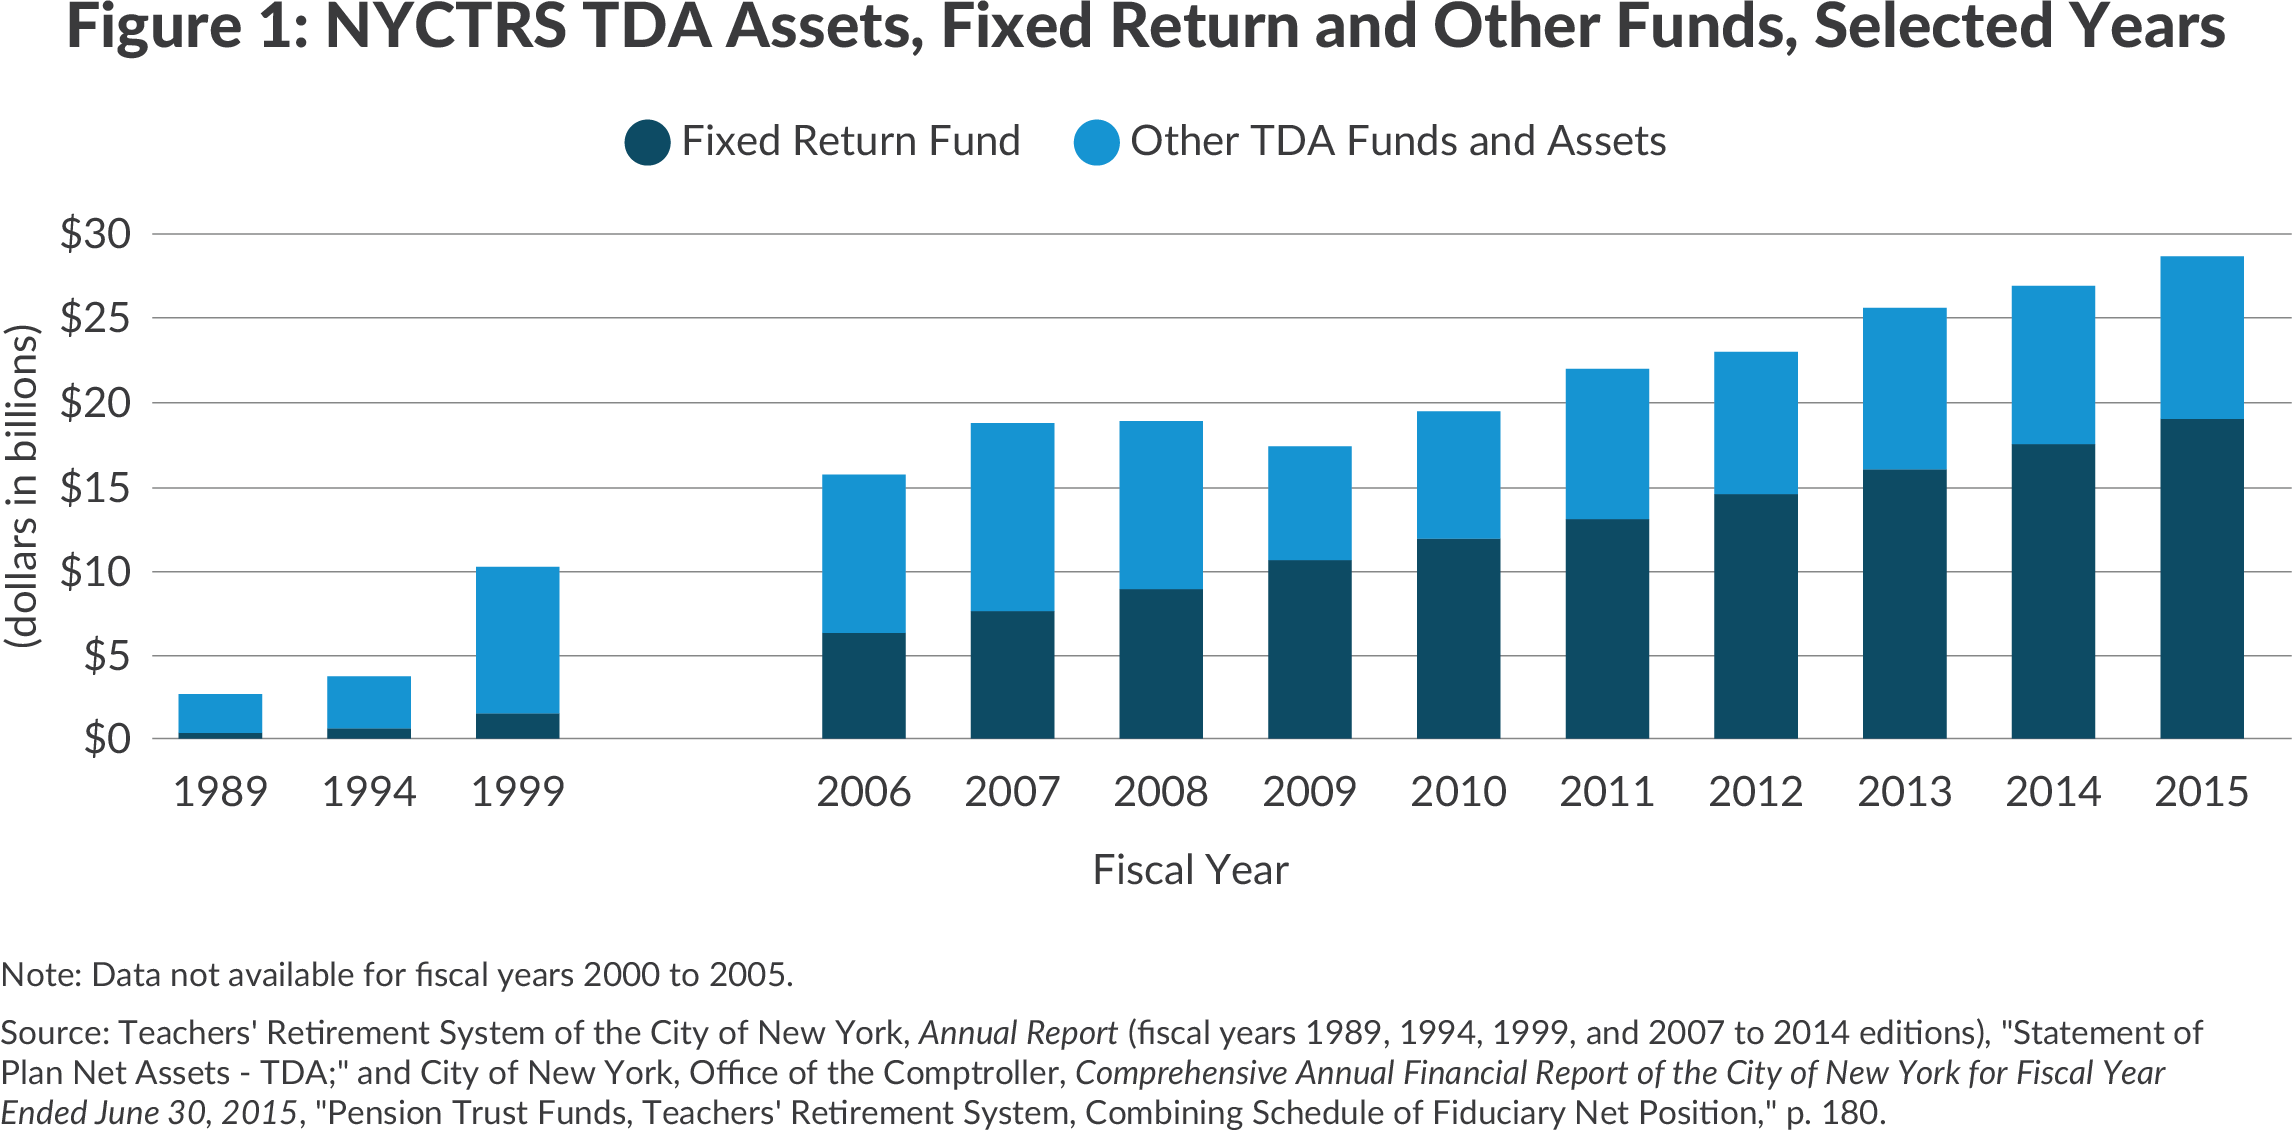 Shows large growth in assets in the NYC TRS TDA Fixed Return Fund